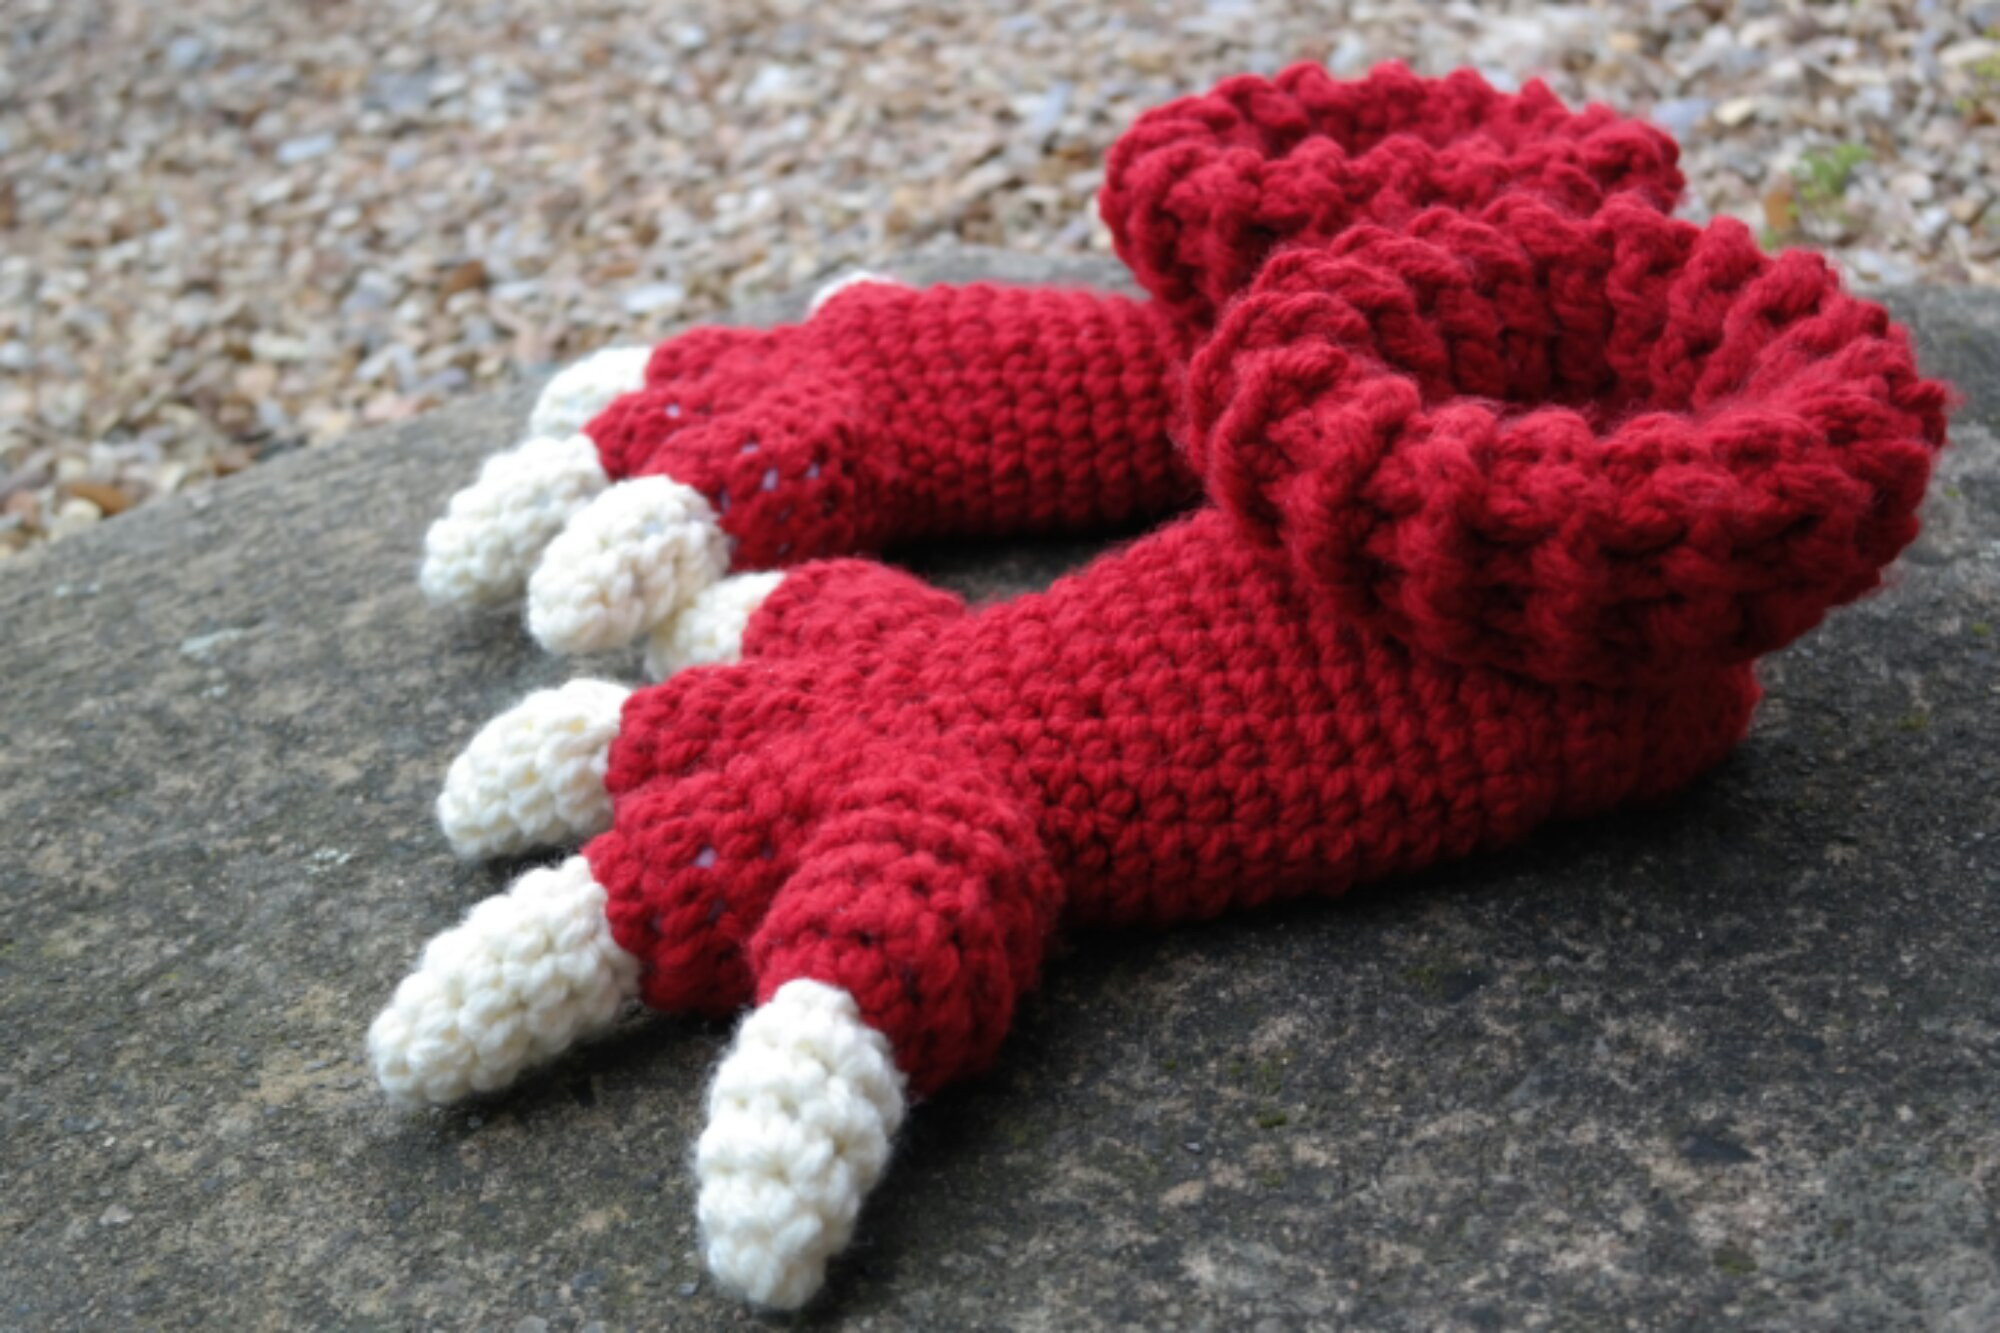 Beautiful Crochet Monster Slippers Free Pattern Crochet Monster Slippers Of Awesome Flamingo Slippers Crochet Monster Slippers Crochet Monster Slippers